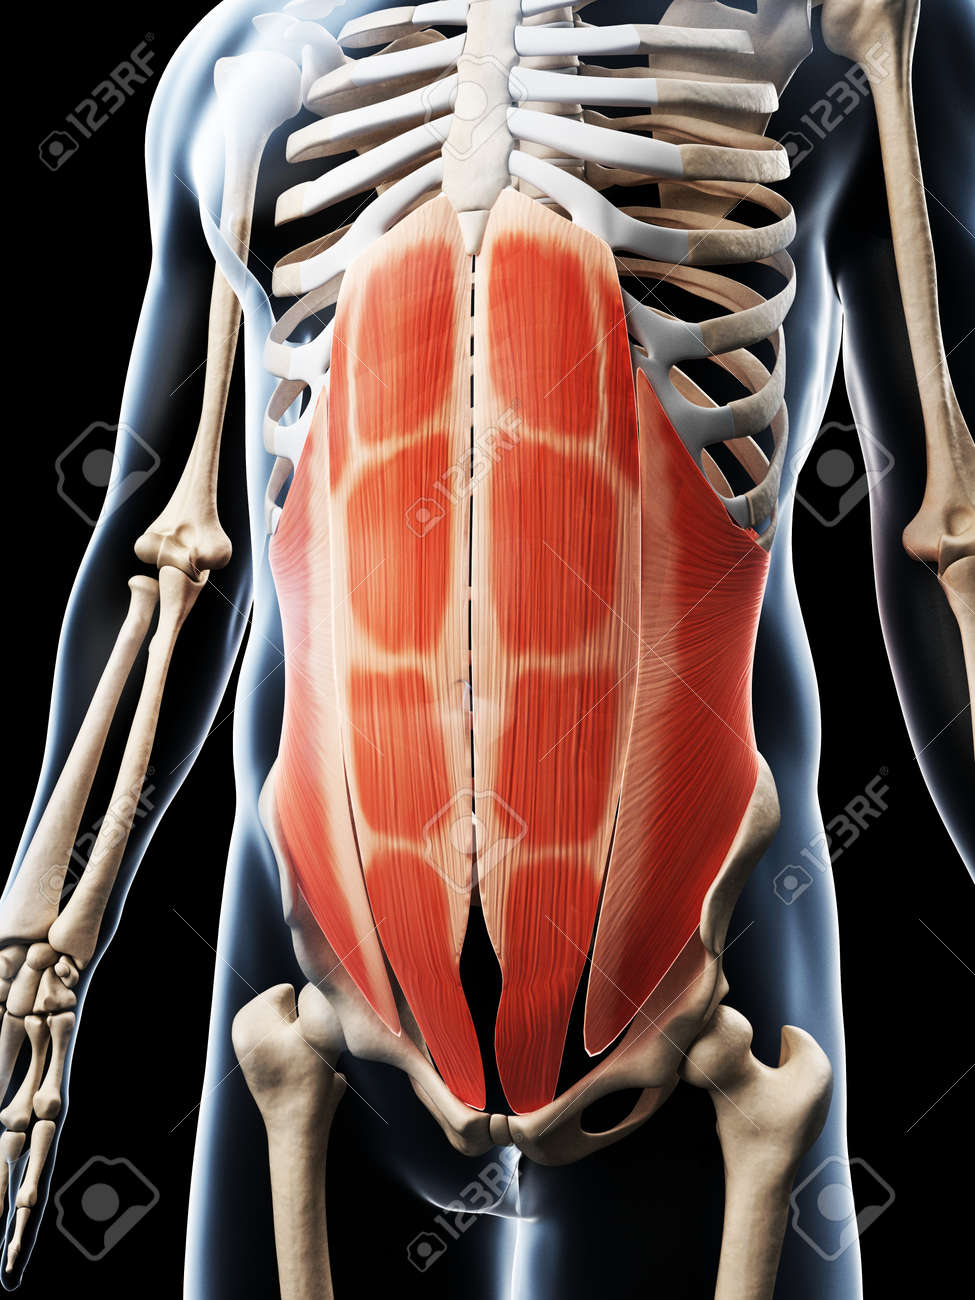 3d Rendered Illustration Of The Abdominal Muscles Stock Photo